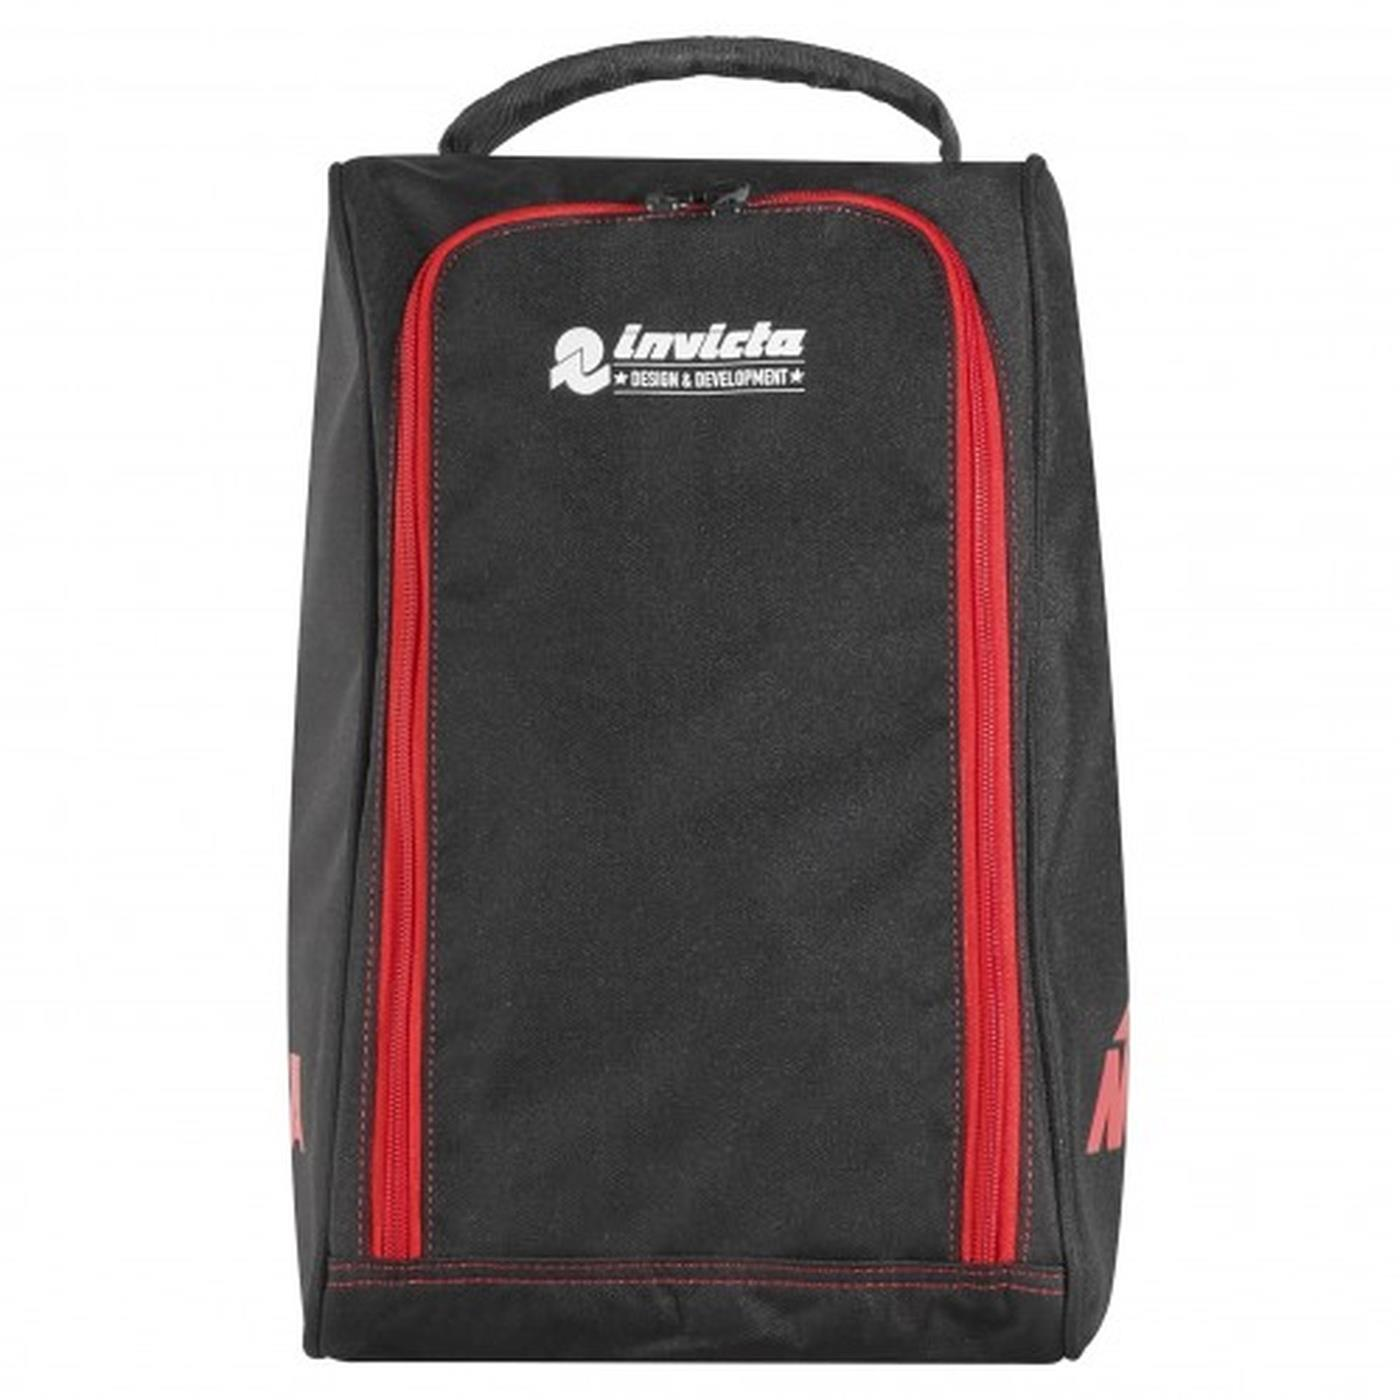 174228 Nordica 0N303700741 NORDICA Promo Boot Bag Sort/Rød OS Nordica Støvelbag